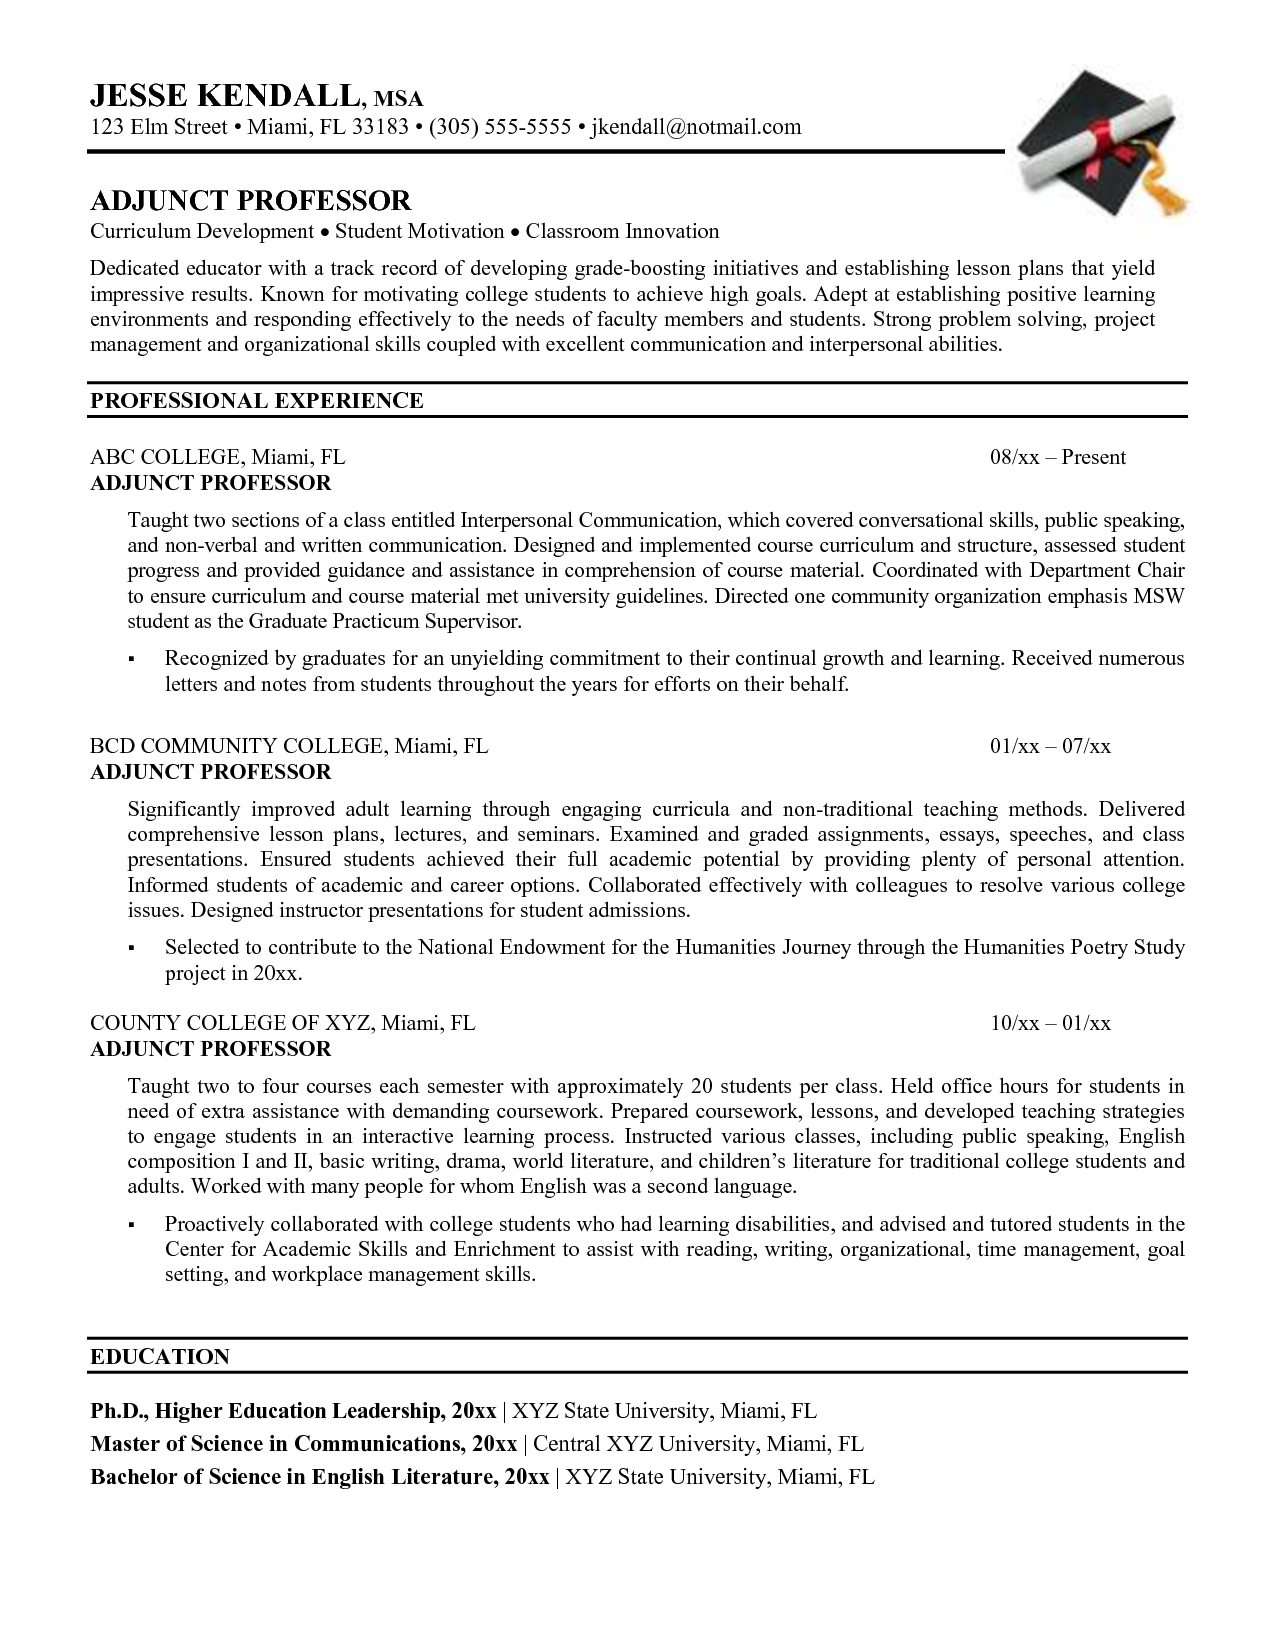 Sample Resume For College Teaching Position Sample Resume For Faculty Position Engineering Adjunct